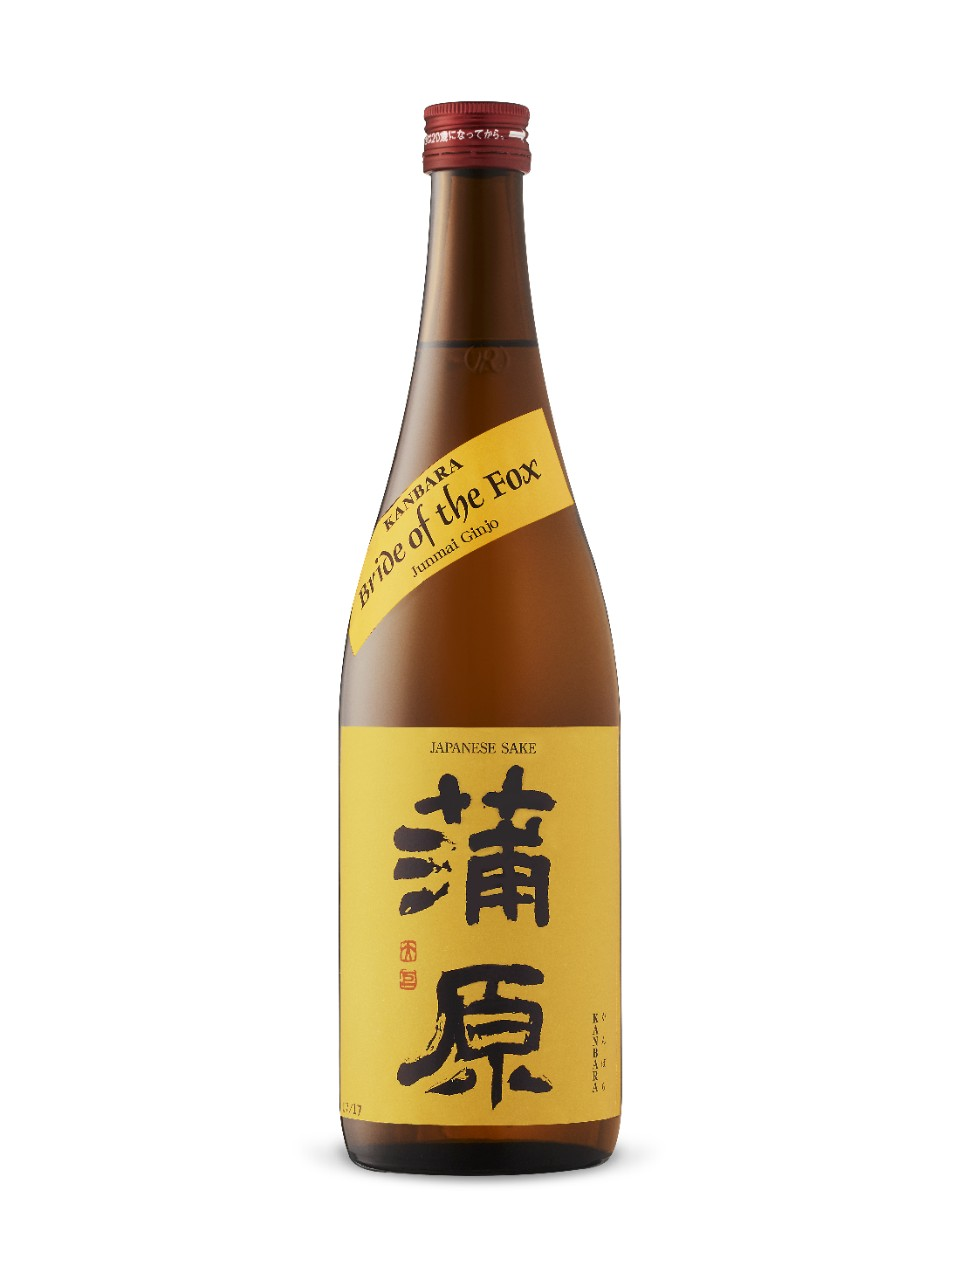 Image for Kanbara Bride Of The Fox Saké from LCBO